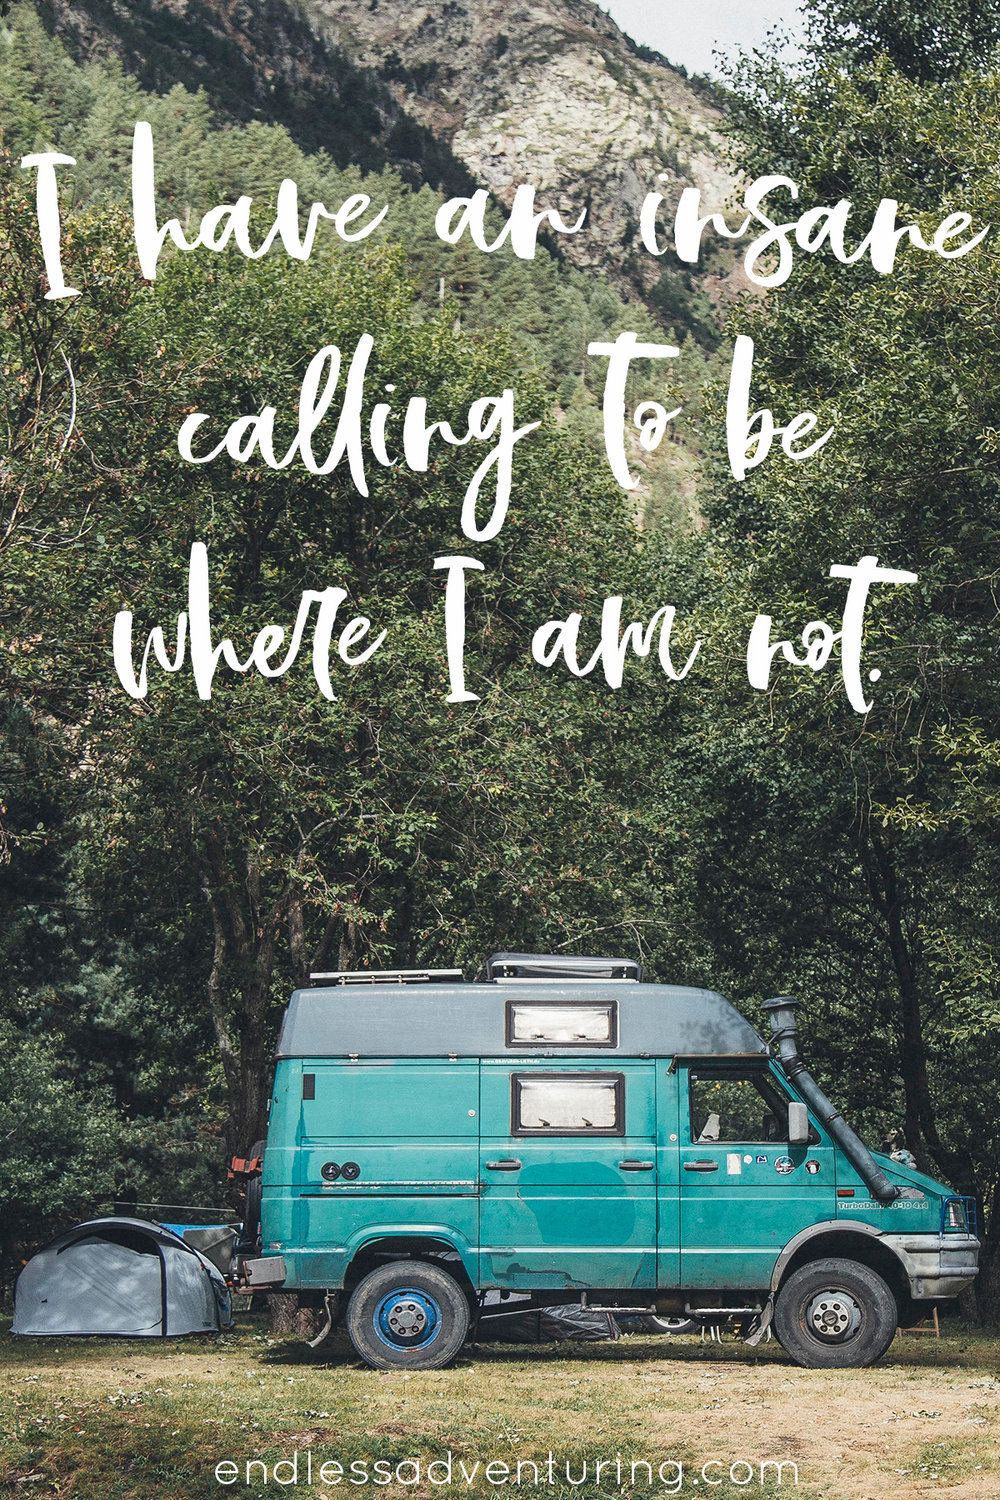 Adventure Quote - I Have An Insane Calling To Be Where I Am Not